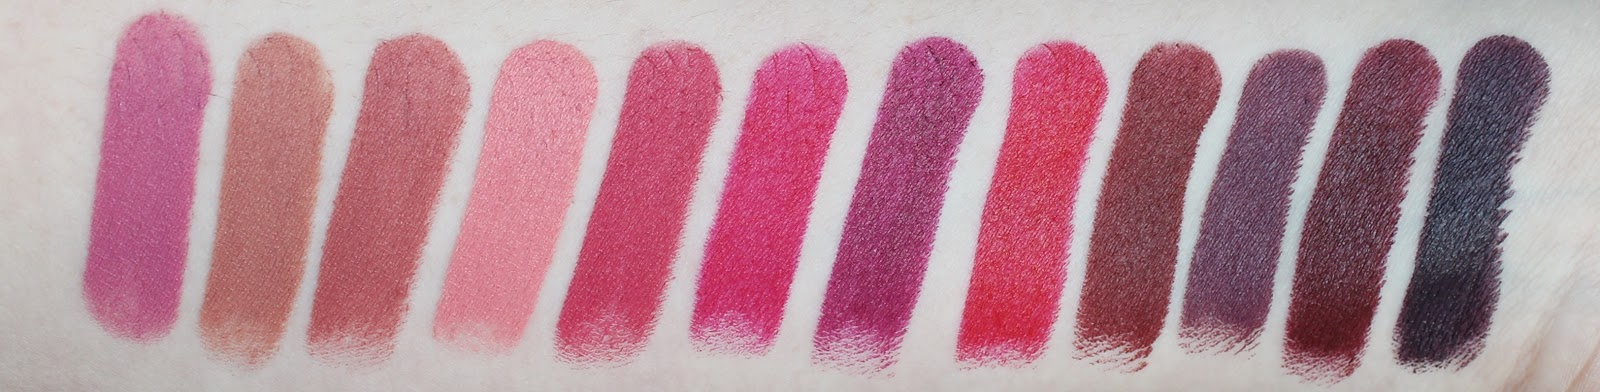 Blend N Smack: Wet N Wild Megalast Lipsticks | Product Review ...